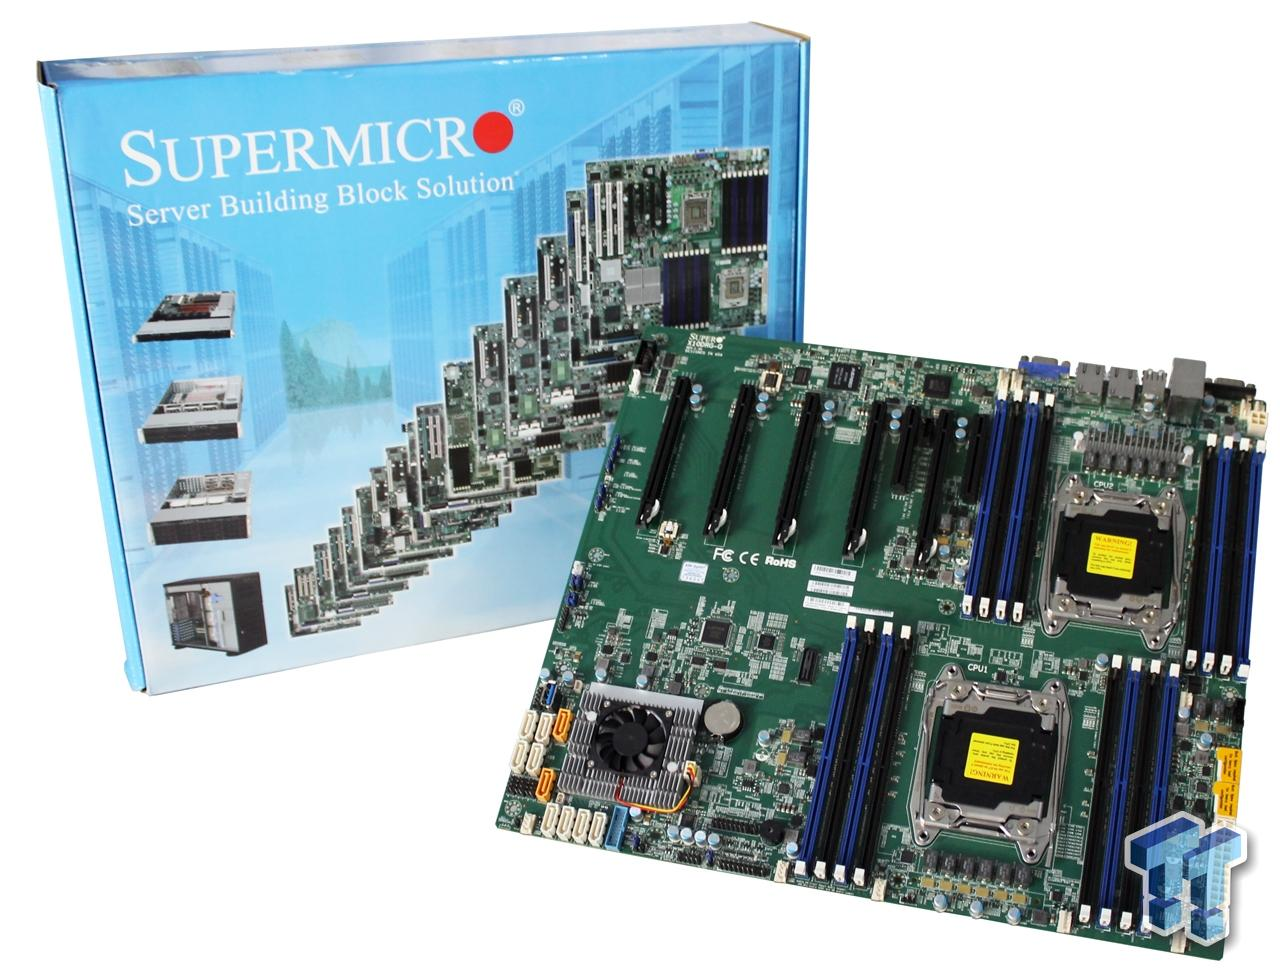 6813_01_supermicro_x10drg_q_intel_c612_workstation_motherboard_review_full.jpg